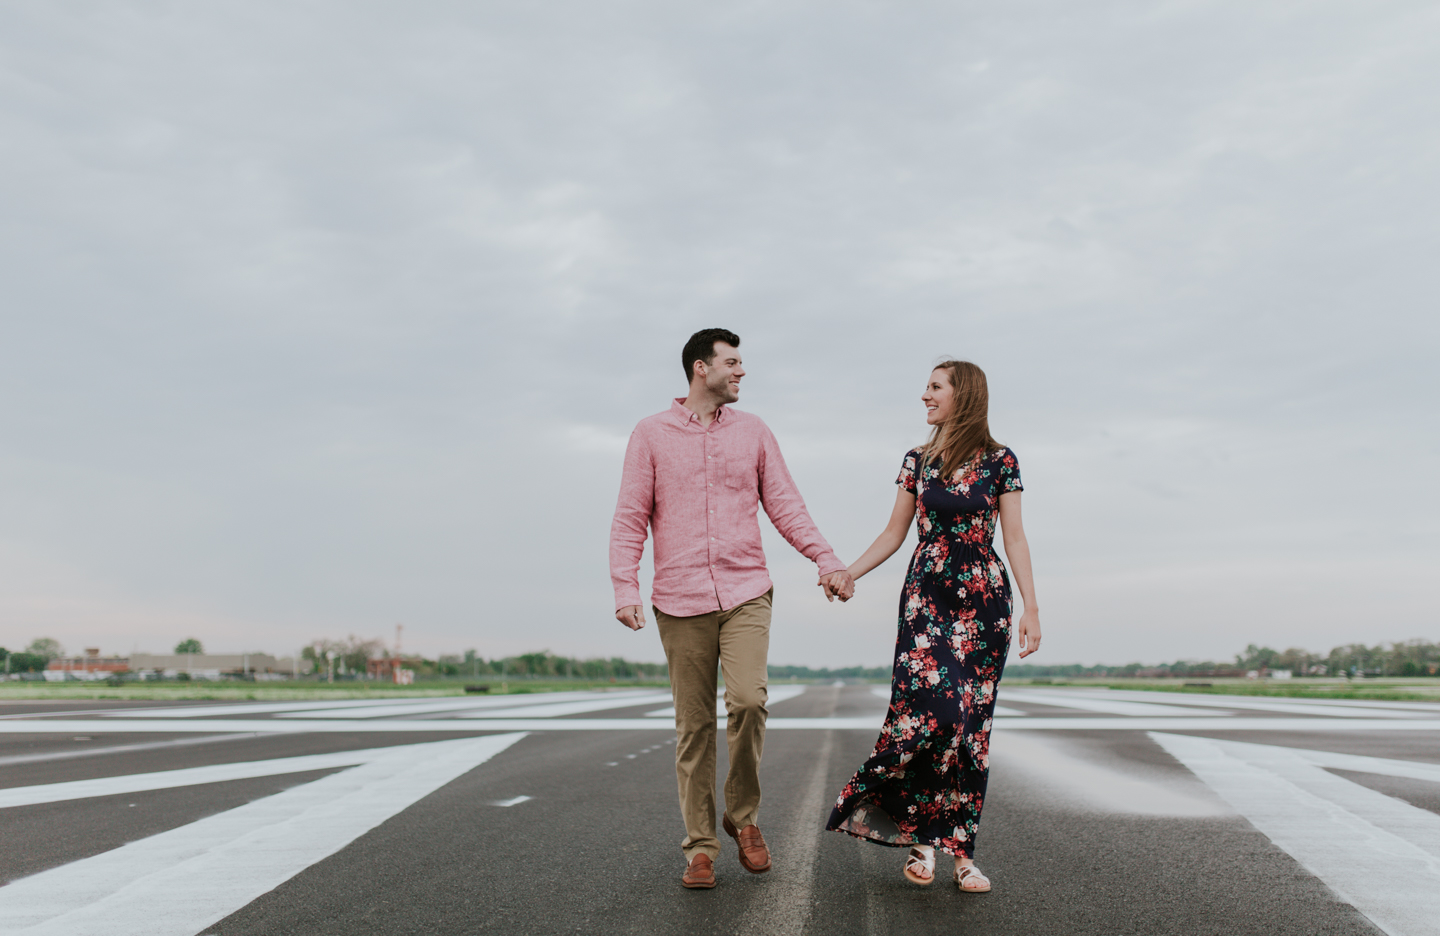 LGP-Detroit-Airport-Hanger-Engagement-Session-12.jpg